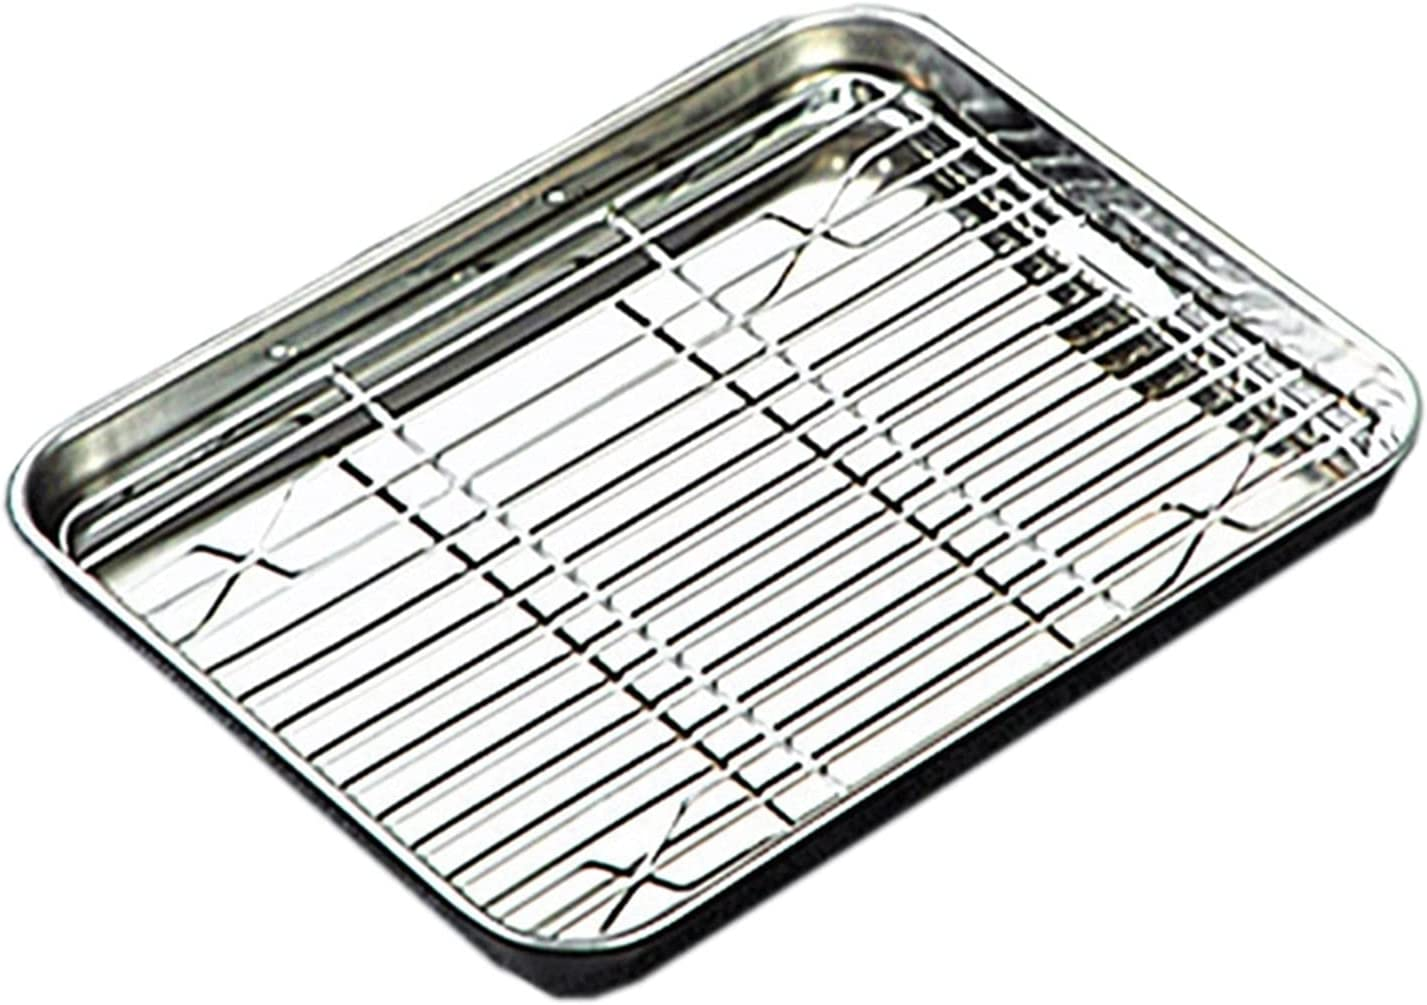 Tray With Removable Rack Set Stainless Cheap sale Ove Cooling For Steel Finally popular brand Pan